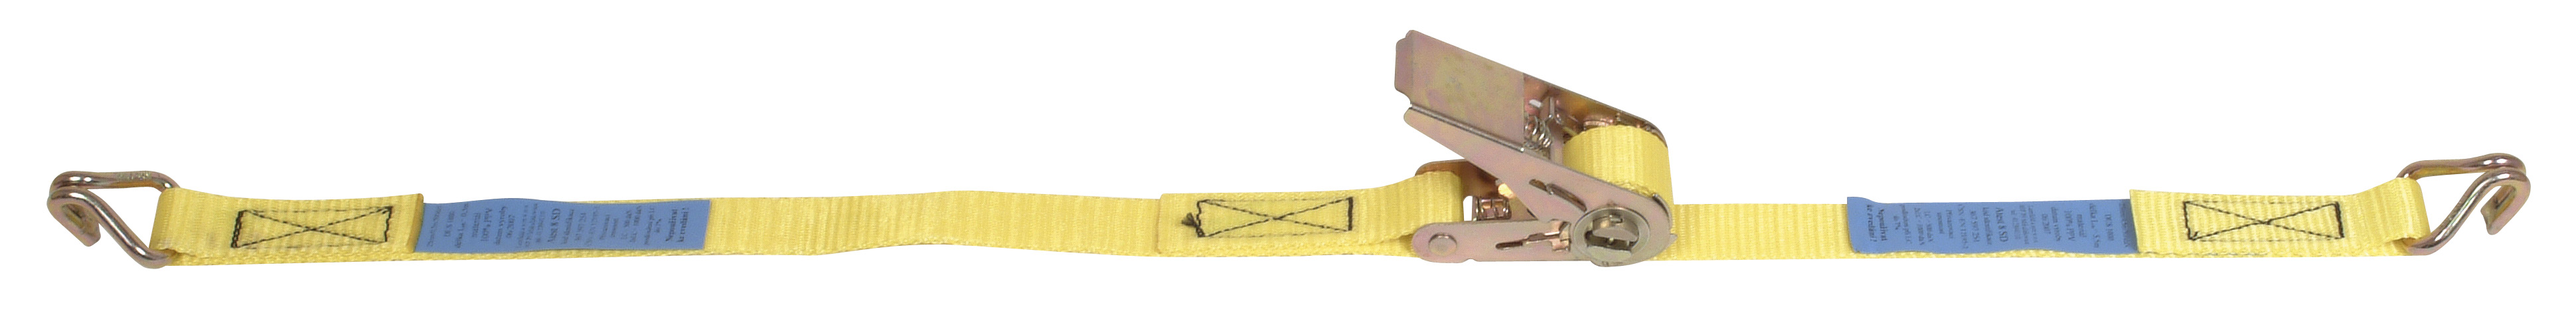 Two-piece belt